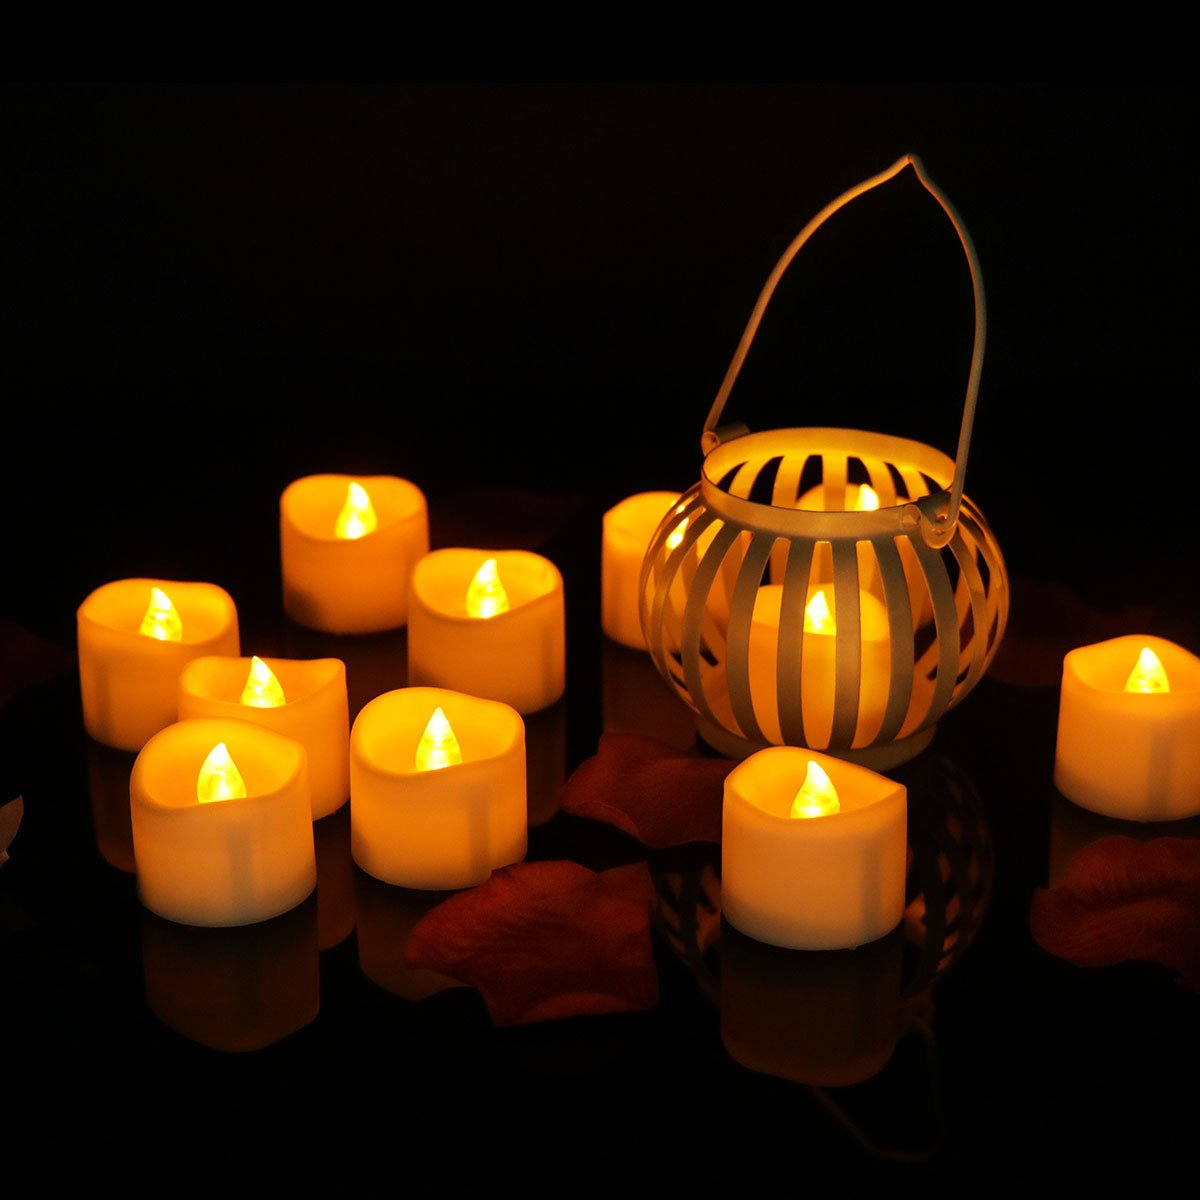 Tea Lights Led Timer (6 Hours on, 18 Hours Off), Flameless Flickering Candles Amber Yellow 24pcs for Halloween, Christmas, Window, Wedding, Fireplace, Lantern, Craft Project (Uneven)